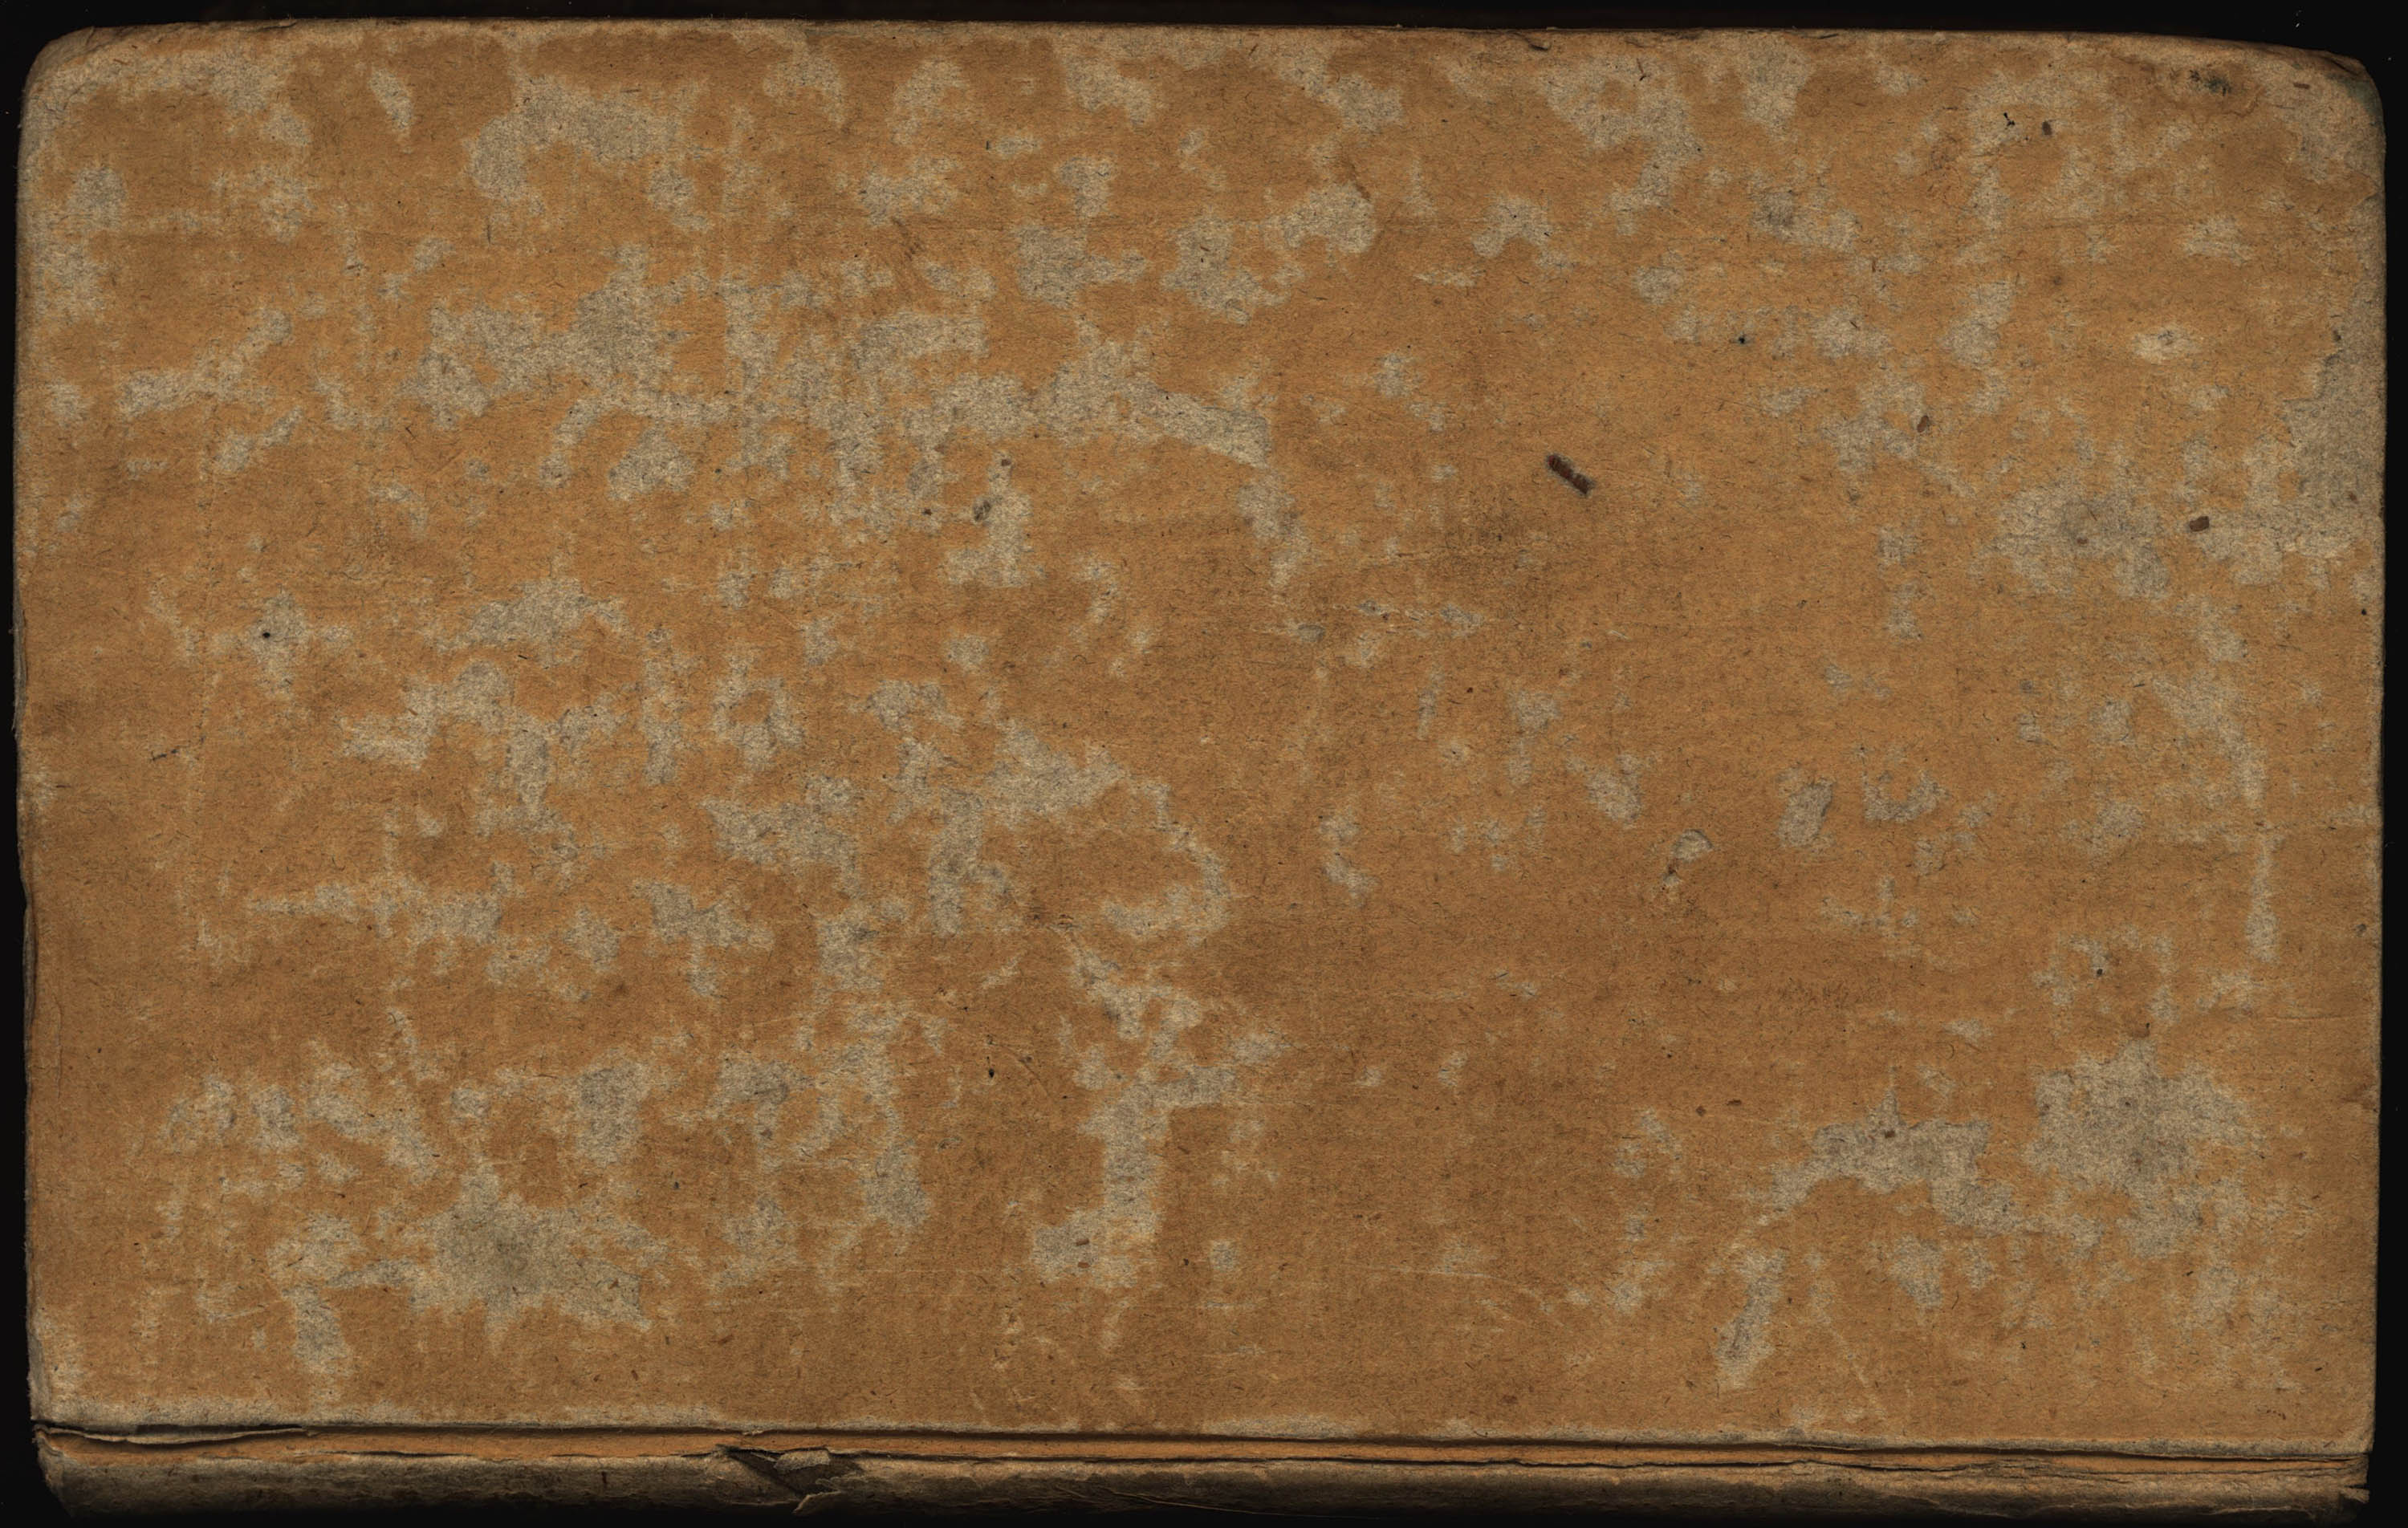 Paper Book Cover Name : Vintage paper book cover texture textures for